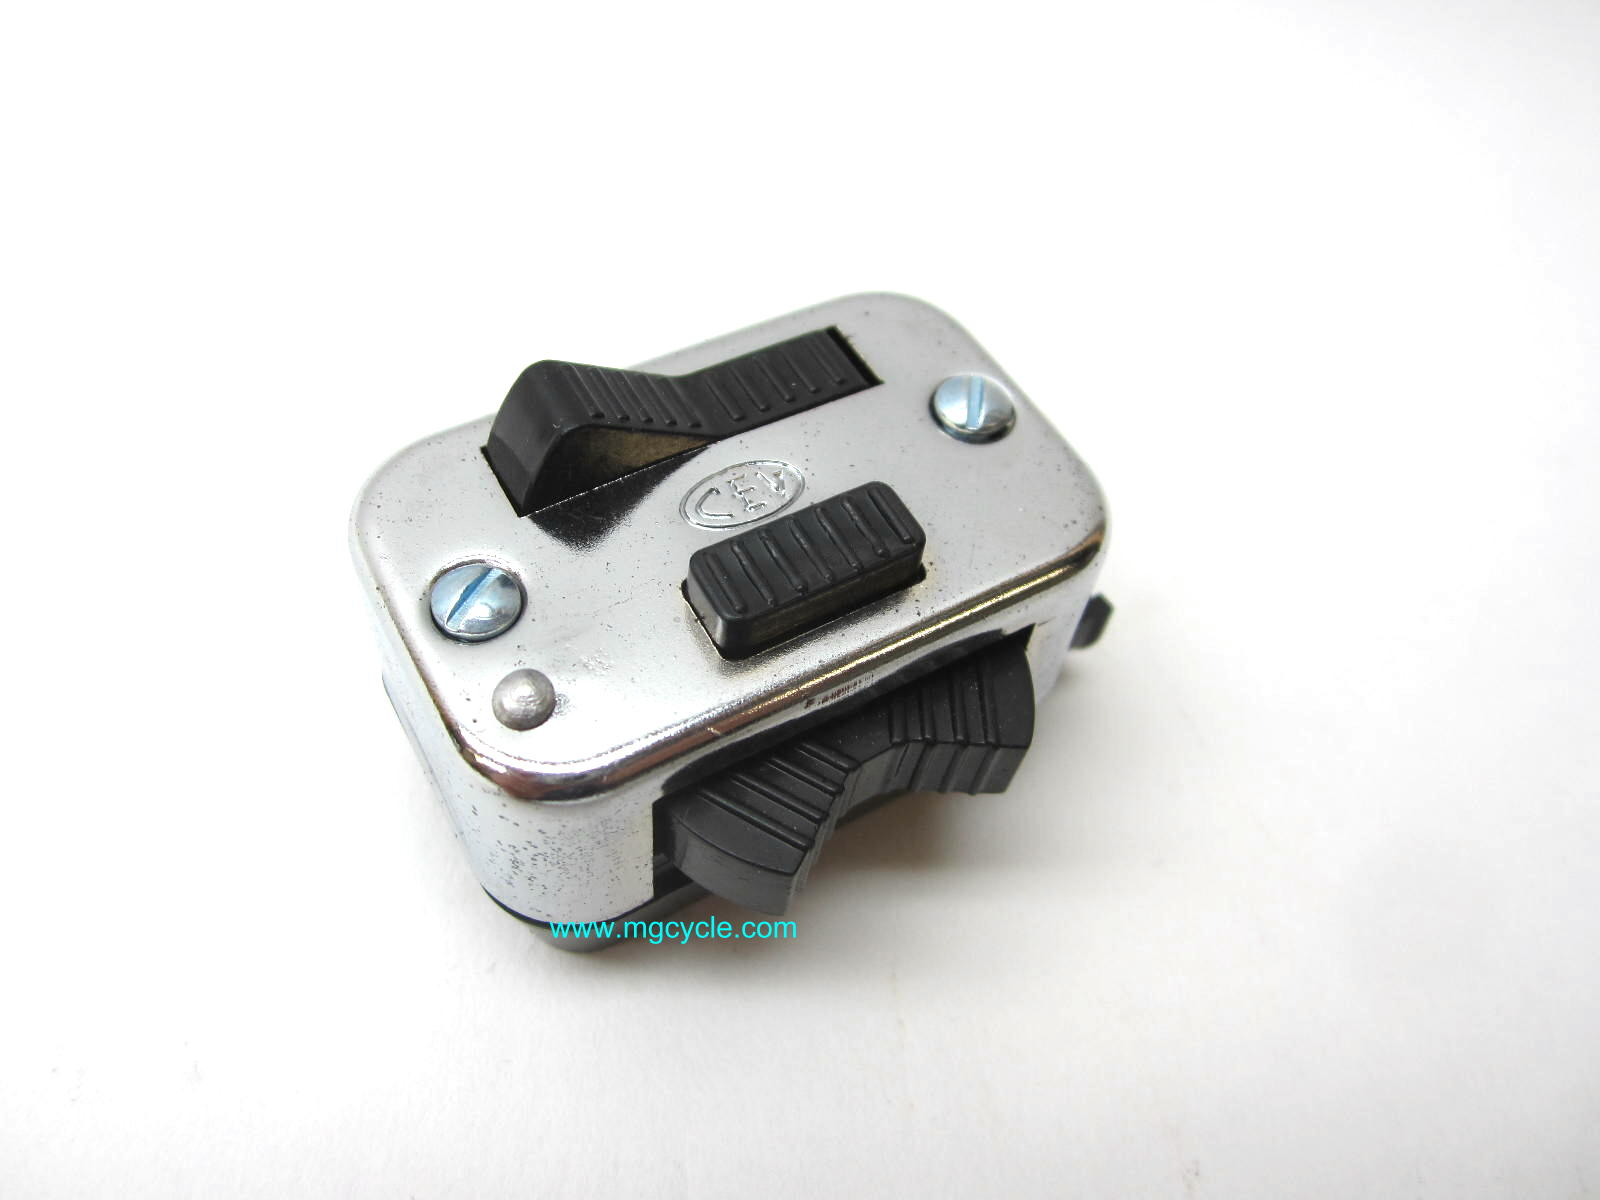 headlight switch for V700, Ambassador, Eldorado, V7 Sport